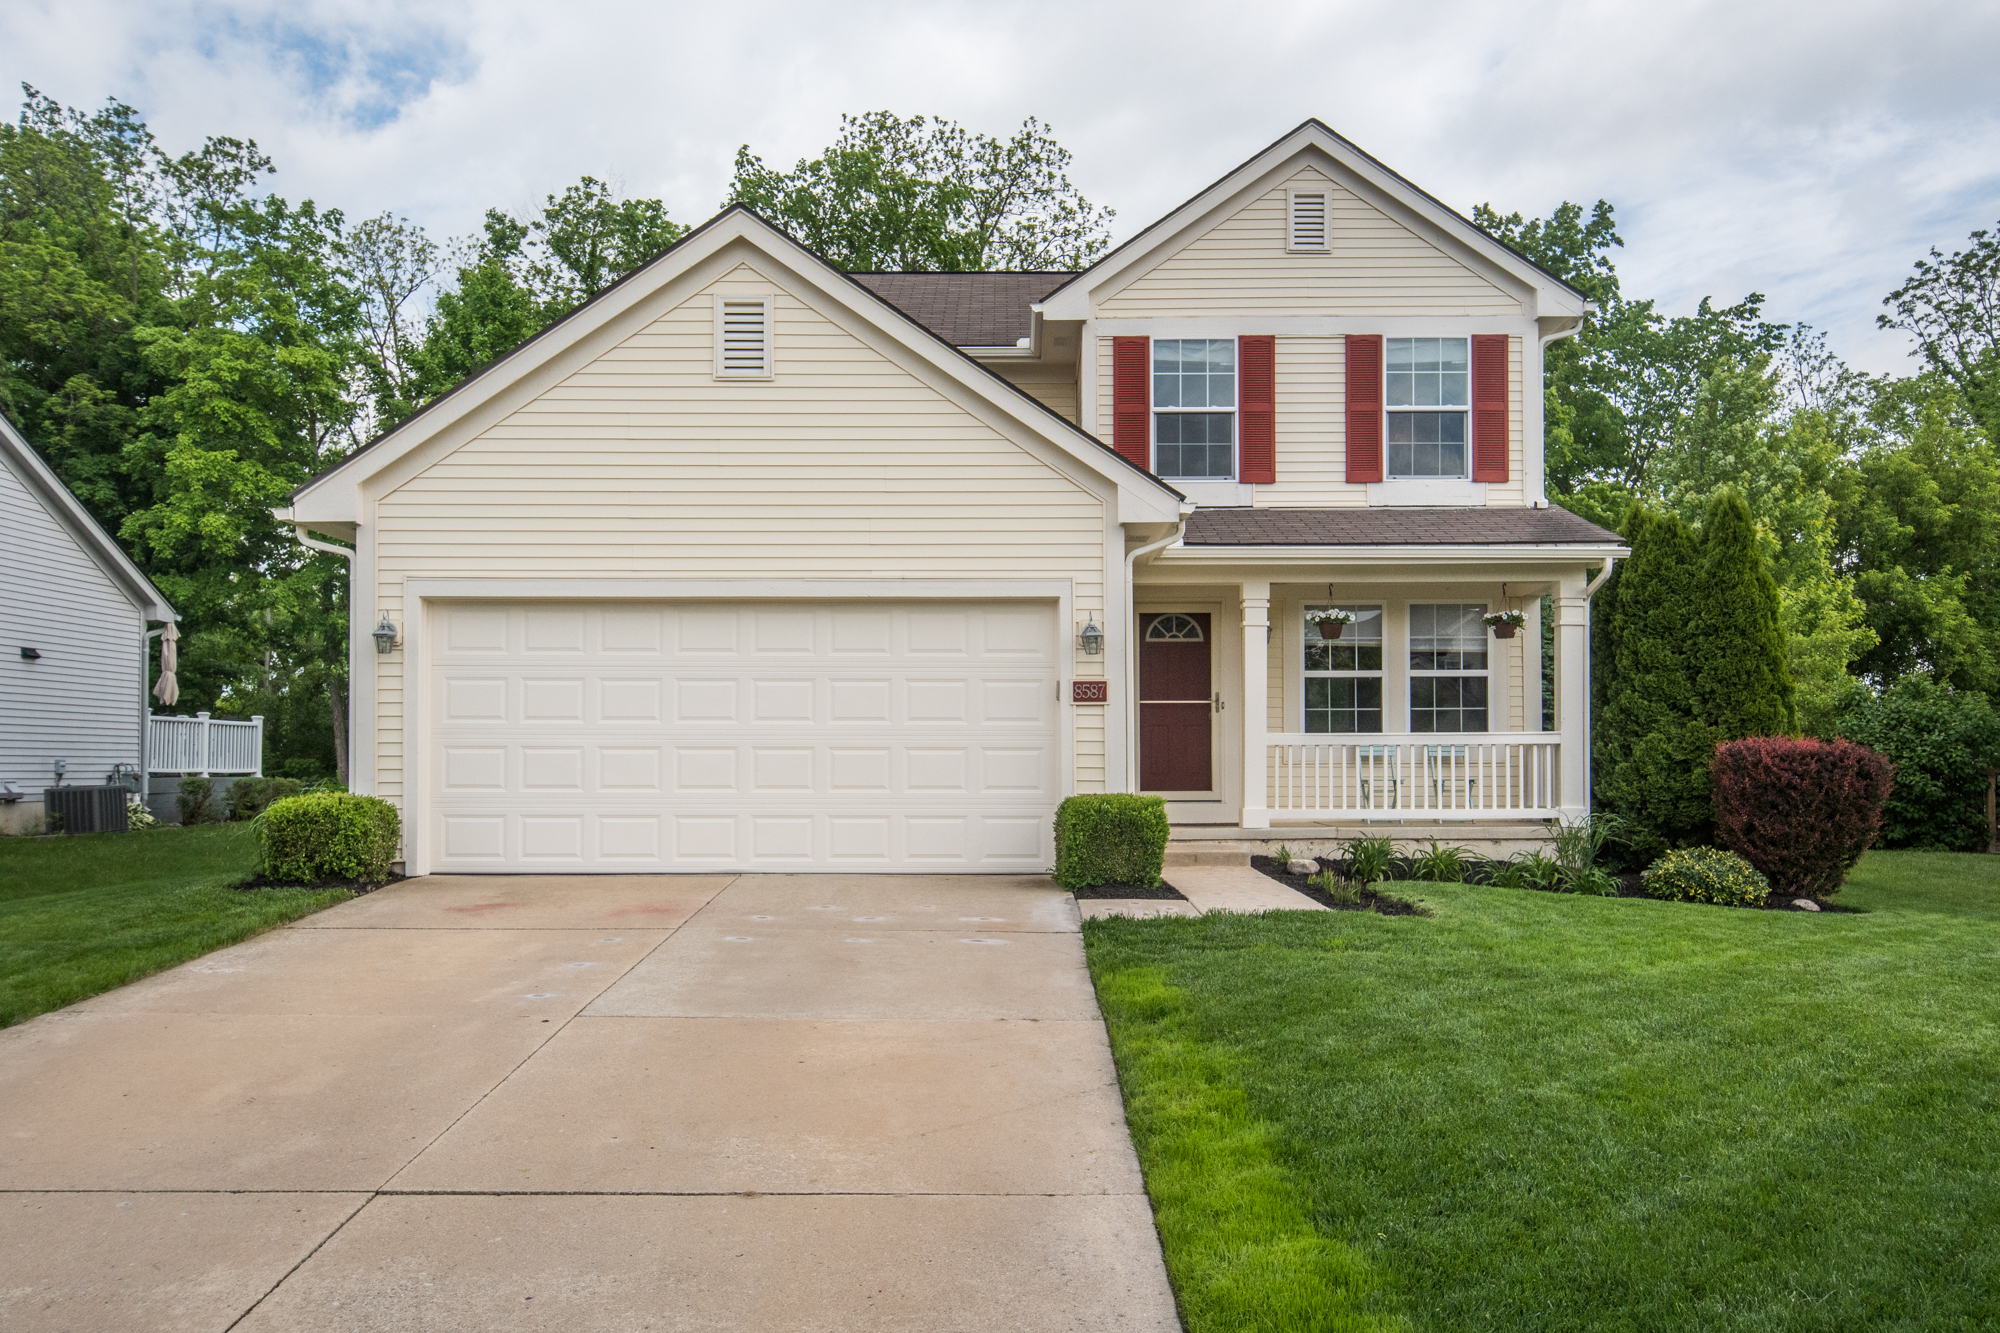 Barrington Dr, Ypsilanti - $239,000   DOM 15 / Sold for 99% of asking price / 22 Showings